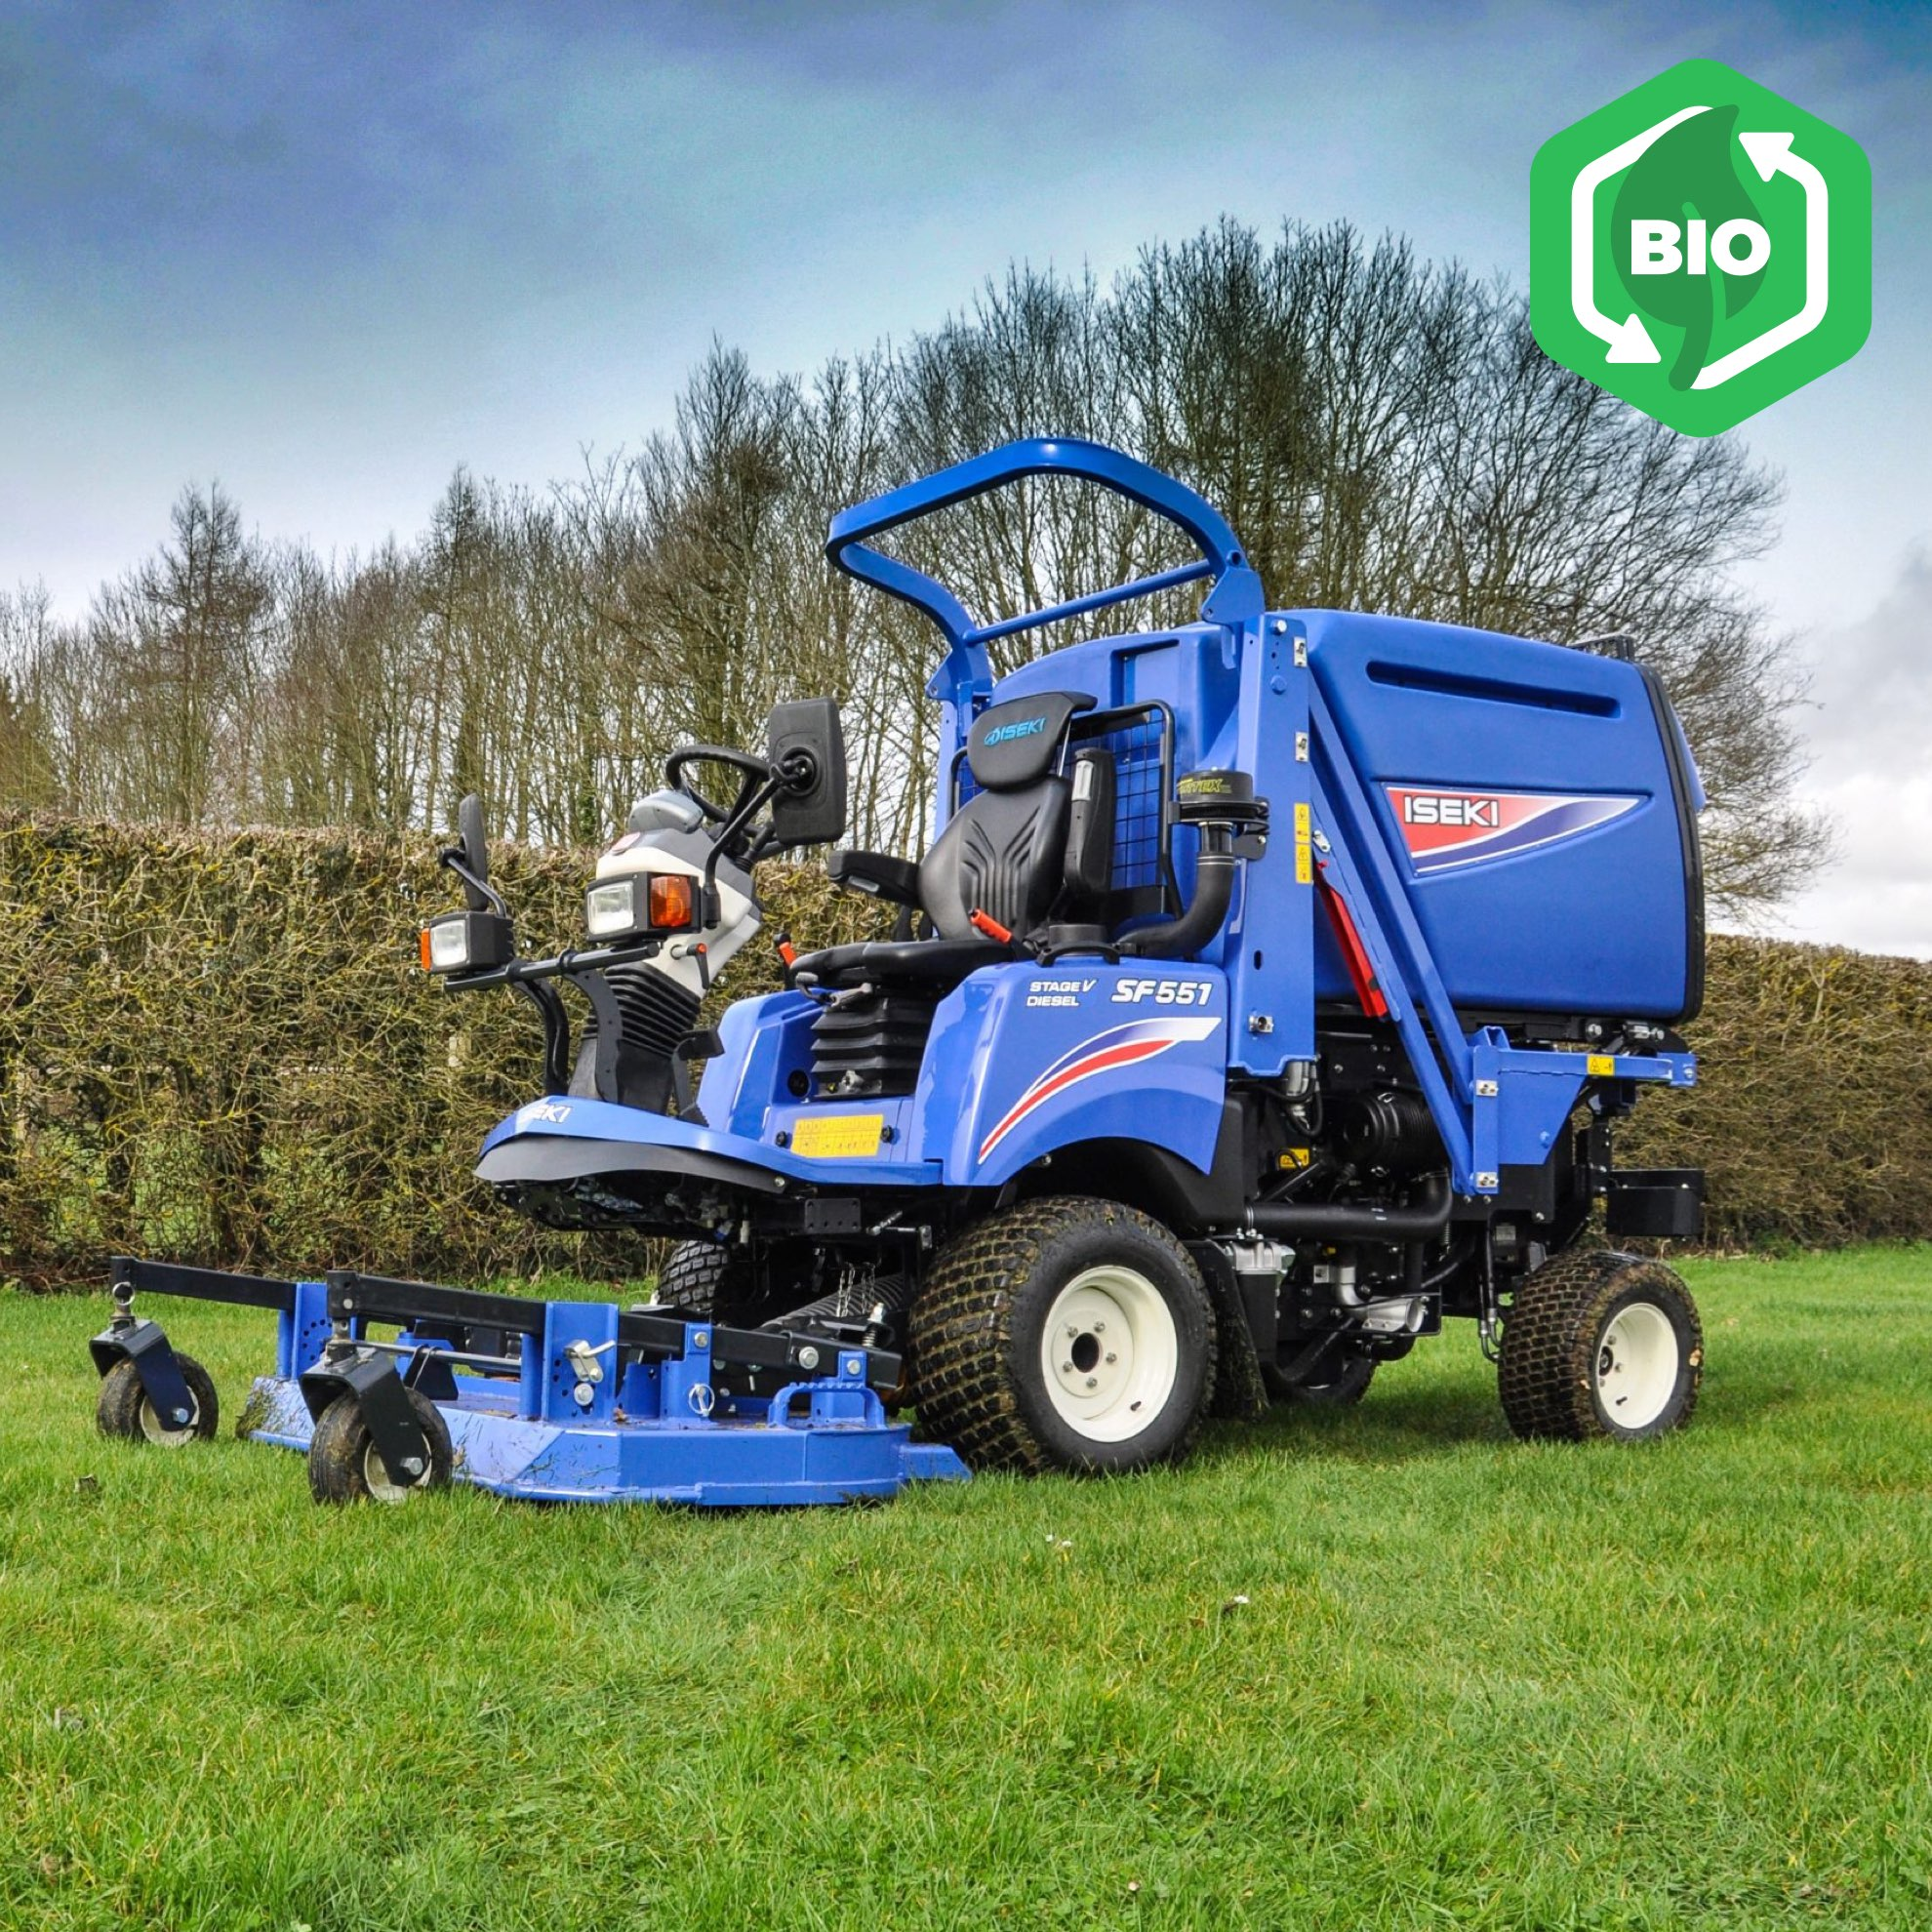 Iseki SF544 + SF551 Out-Front Mower Collectors